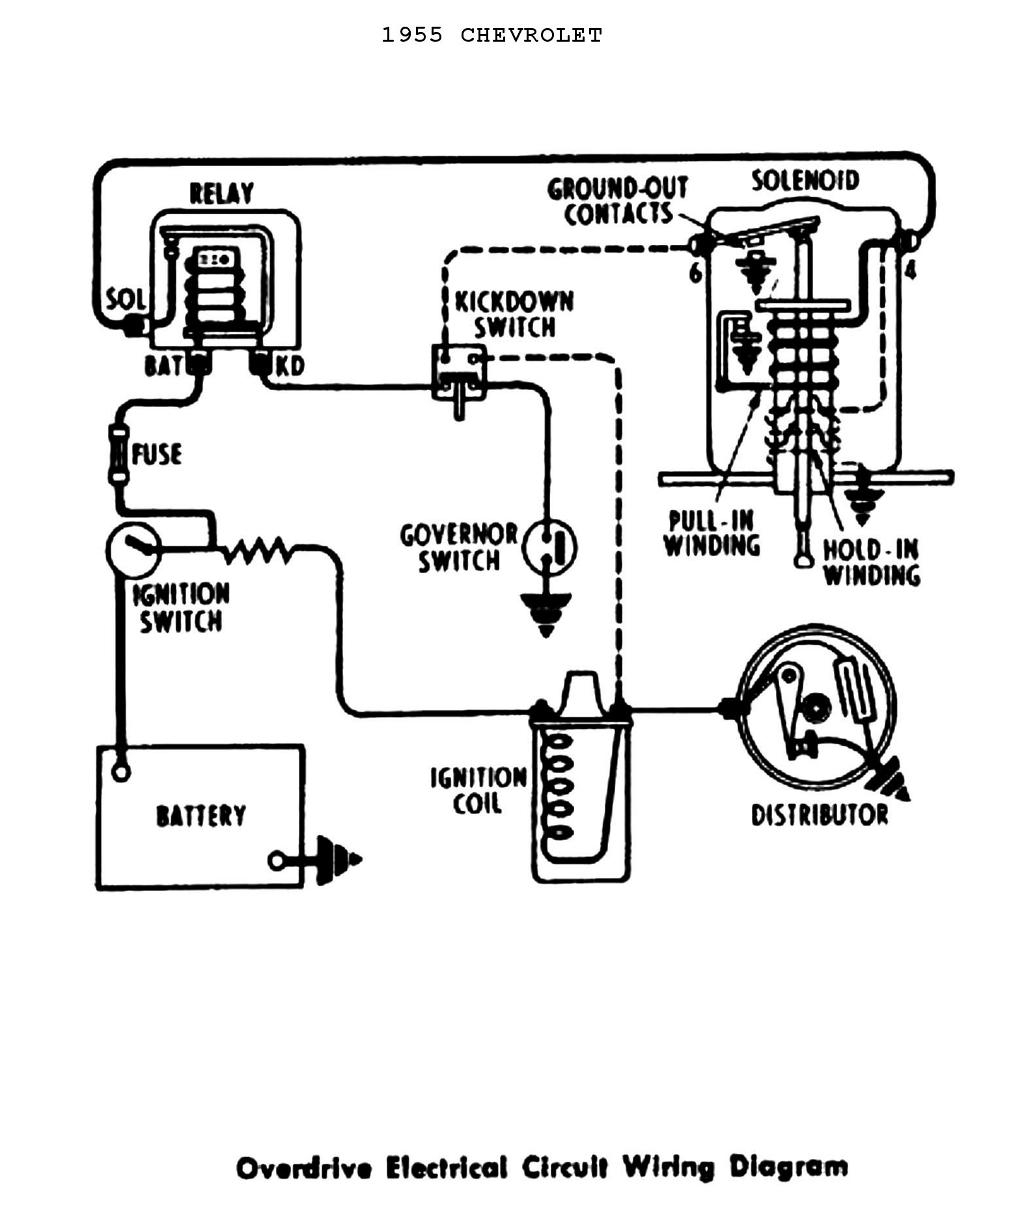 1989 chevy truck alternator wiring